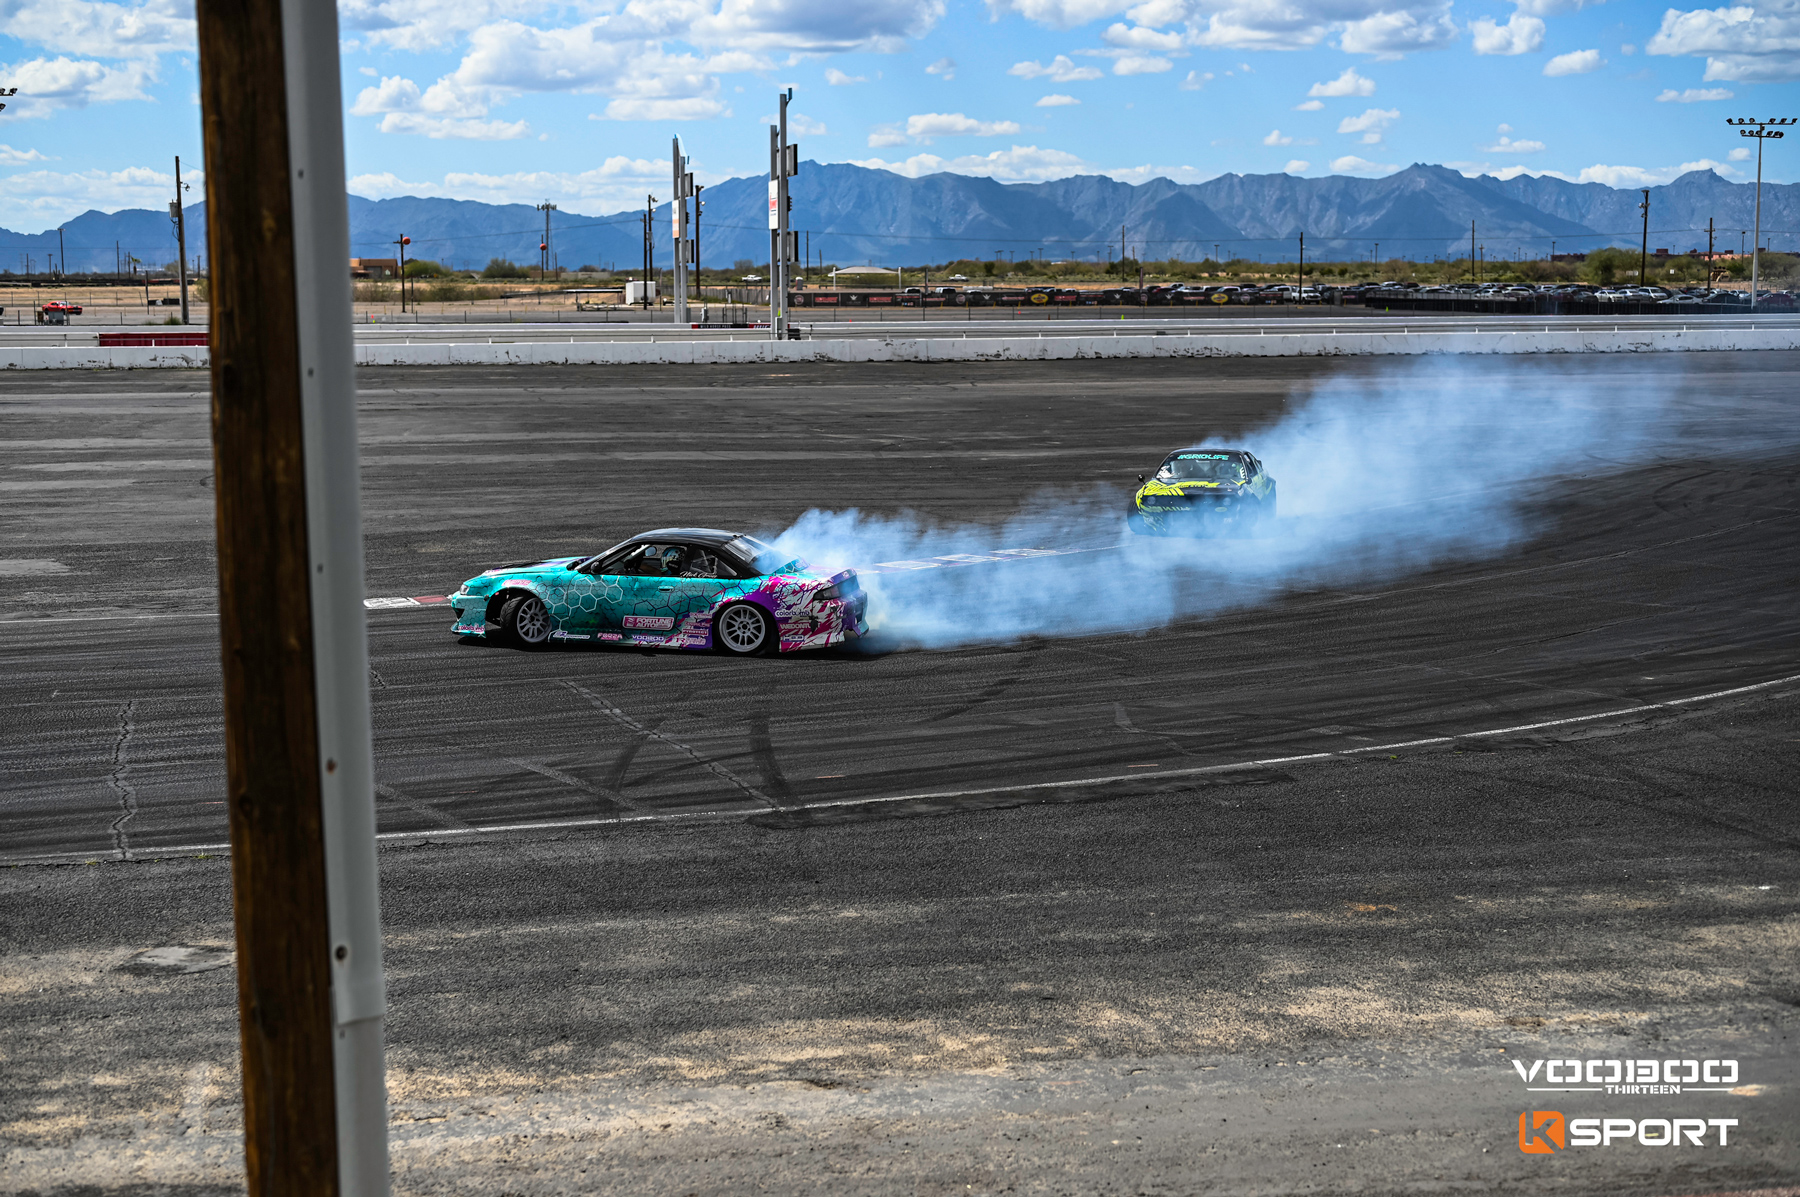 Voodoo13 USA and Sponsored Driver, Nick Gross at Import Face-Off 2020